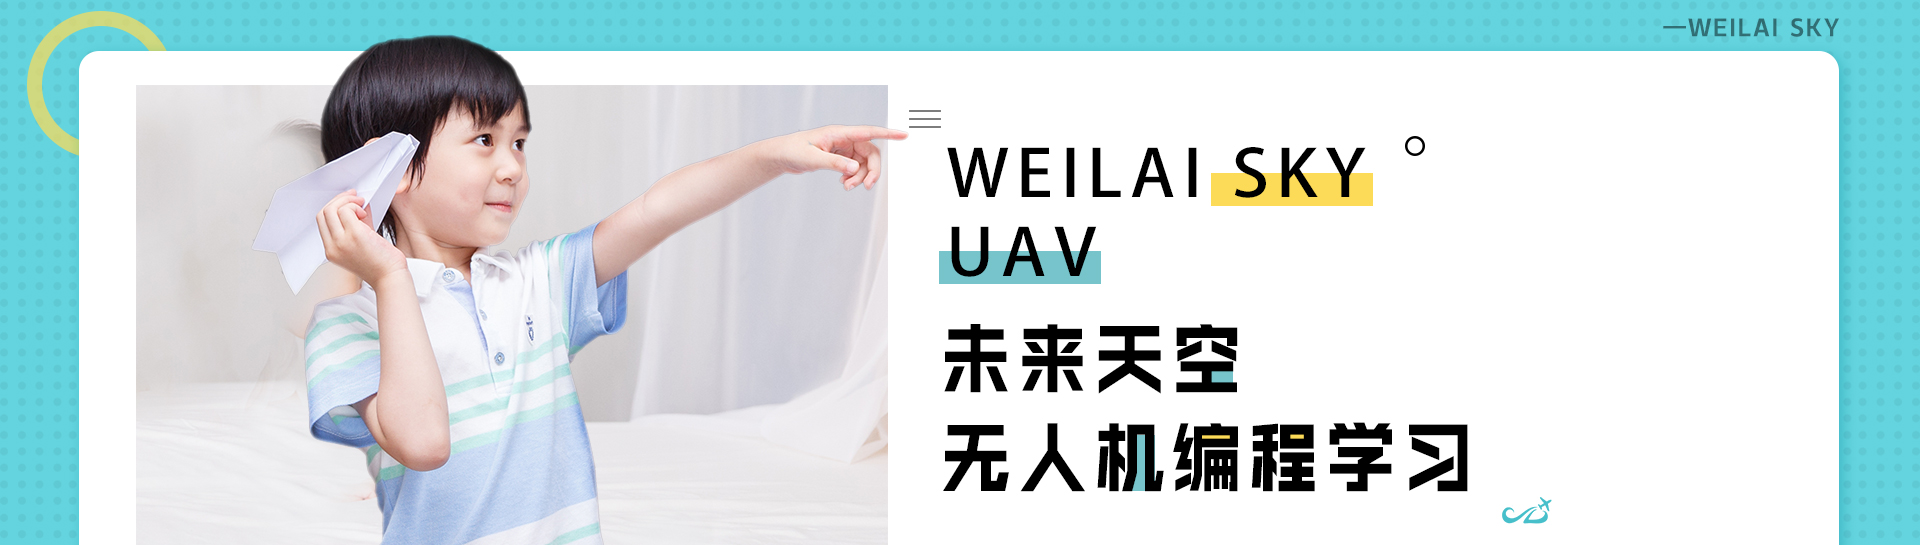 http://www.weilaisky.cn/data/images/slide/20190809181740_500.jpg